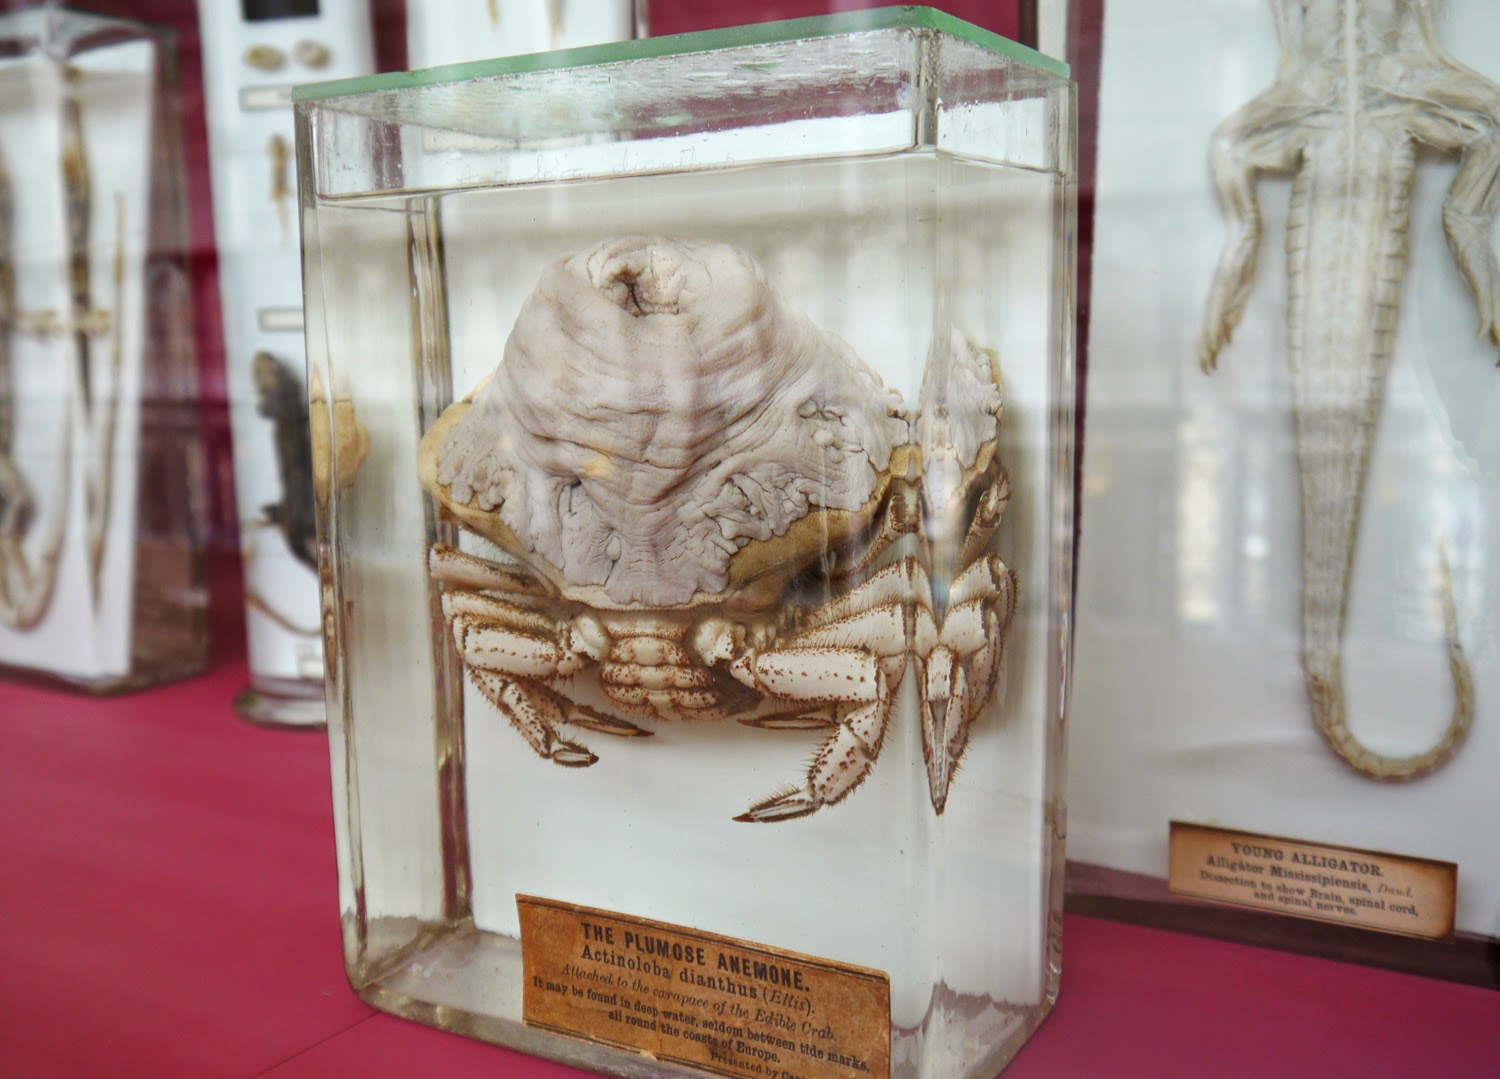 national museum, scotland, animal land, crab, lobster, crustacean, taxidermy, biology, natural history, Edinburgh, weird